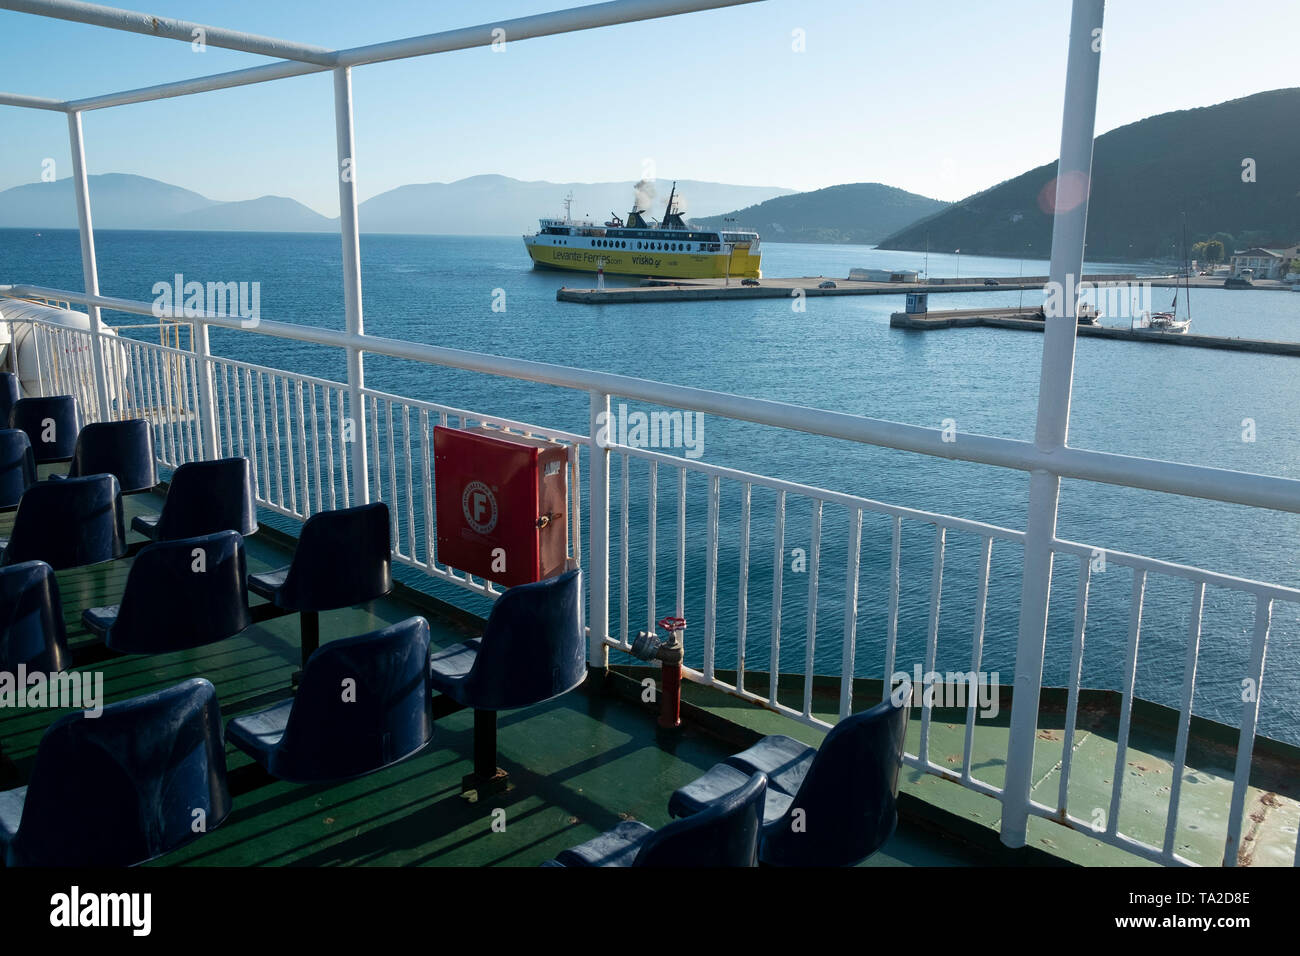 Smoke coming from the funnel of Ionian Lines ferry in Sami, Kefalonia, Greece. Kefalonia is an island in the Ionian Sea, west of mainland Greece. - Stock Image